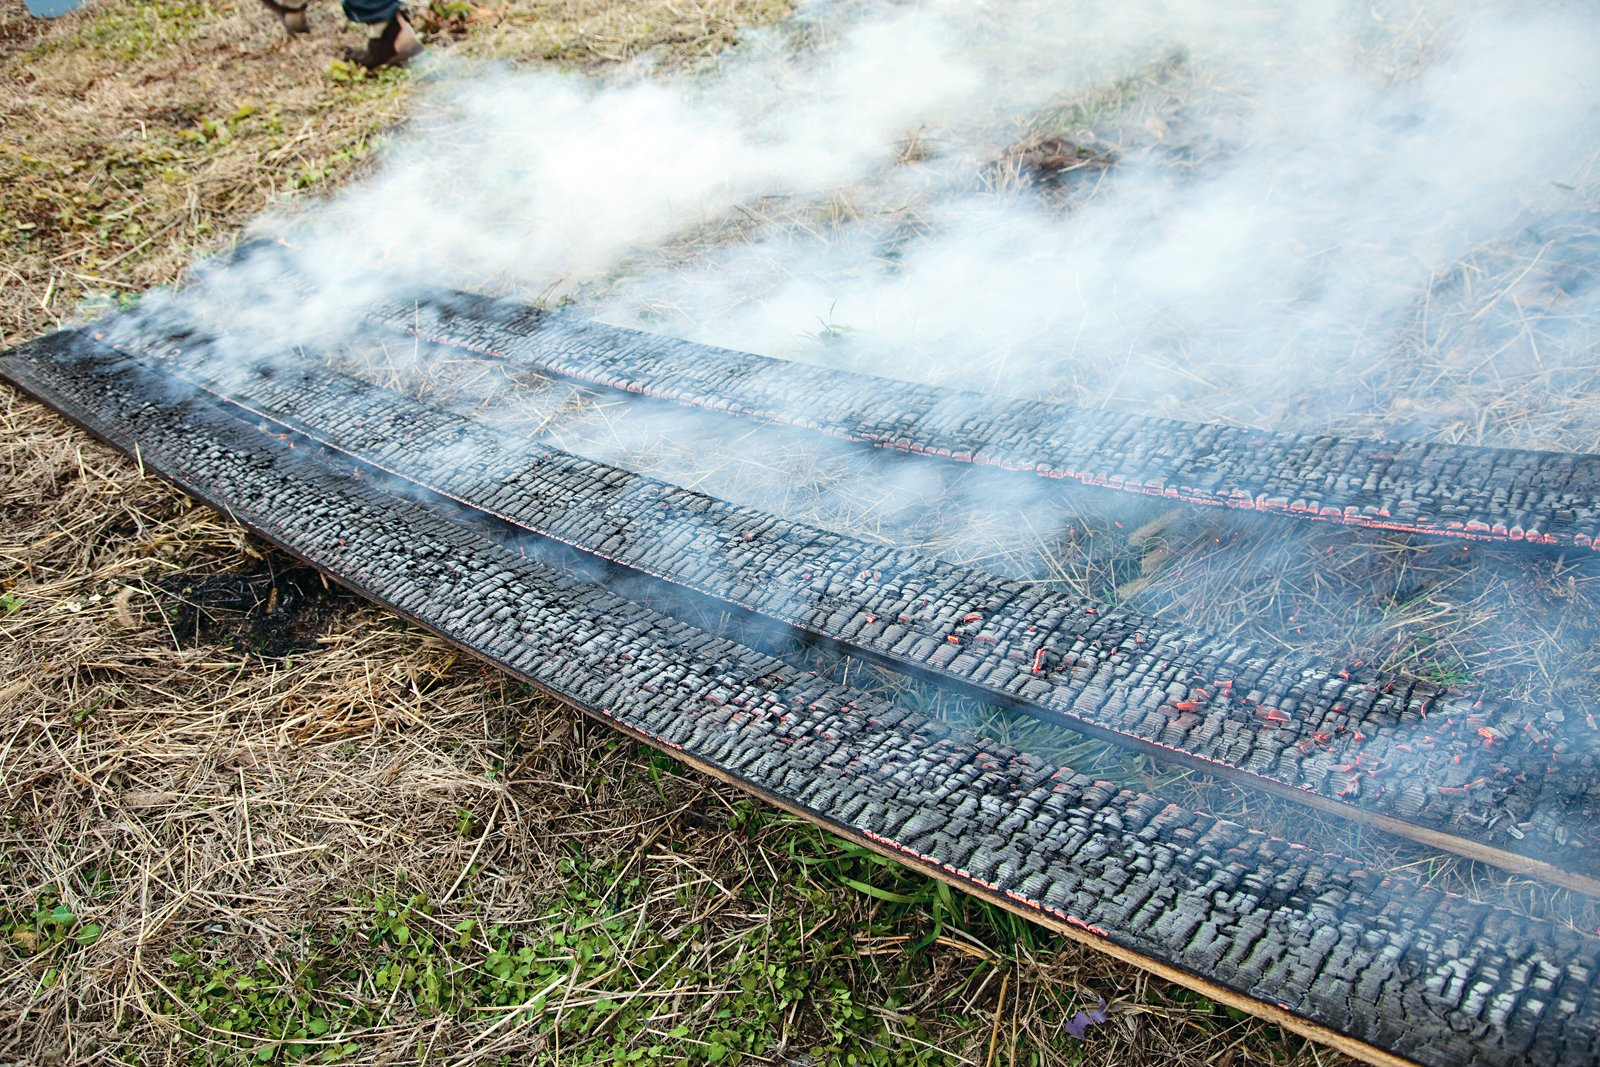 After the flames have been put out, the boards continue to crackle and smoke. Charring the boards properly requires a delicate balance between just enough burning, but not too much.